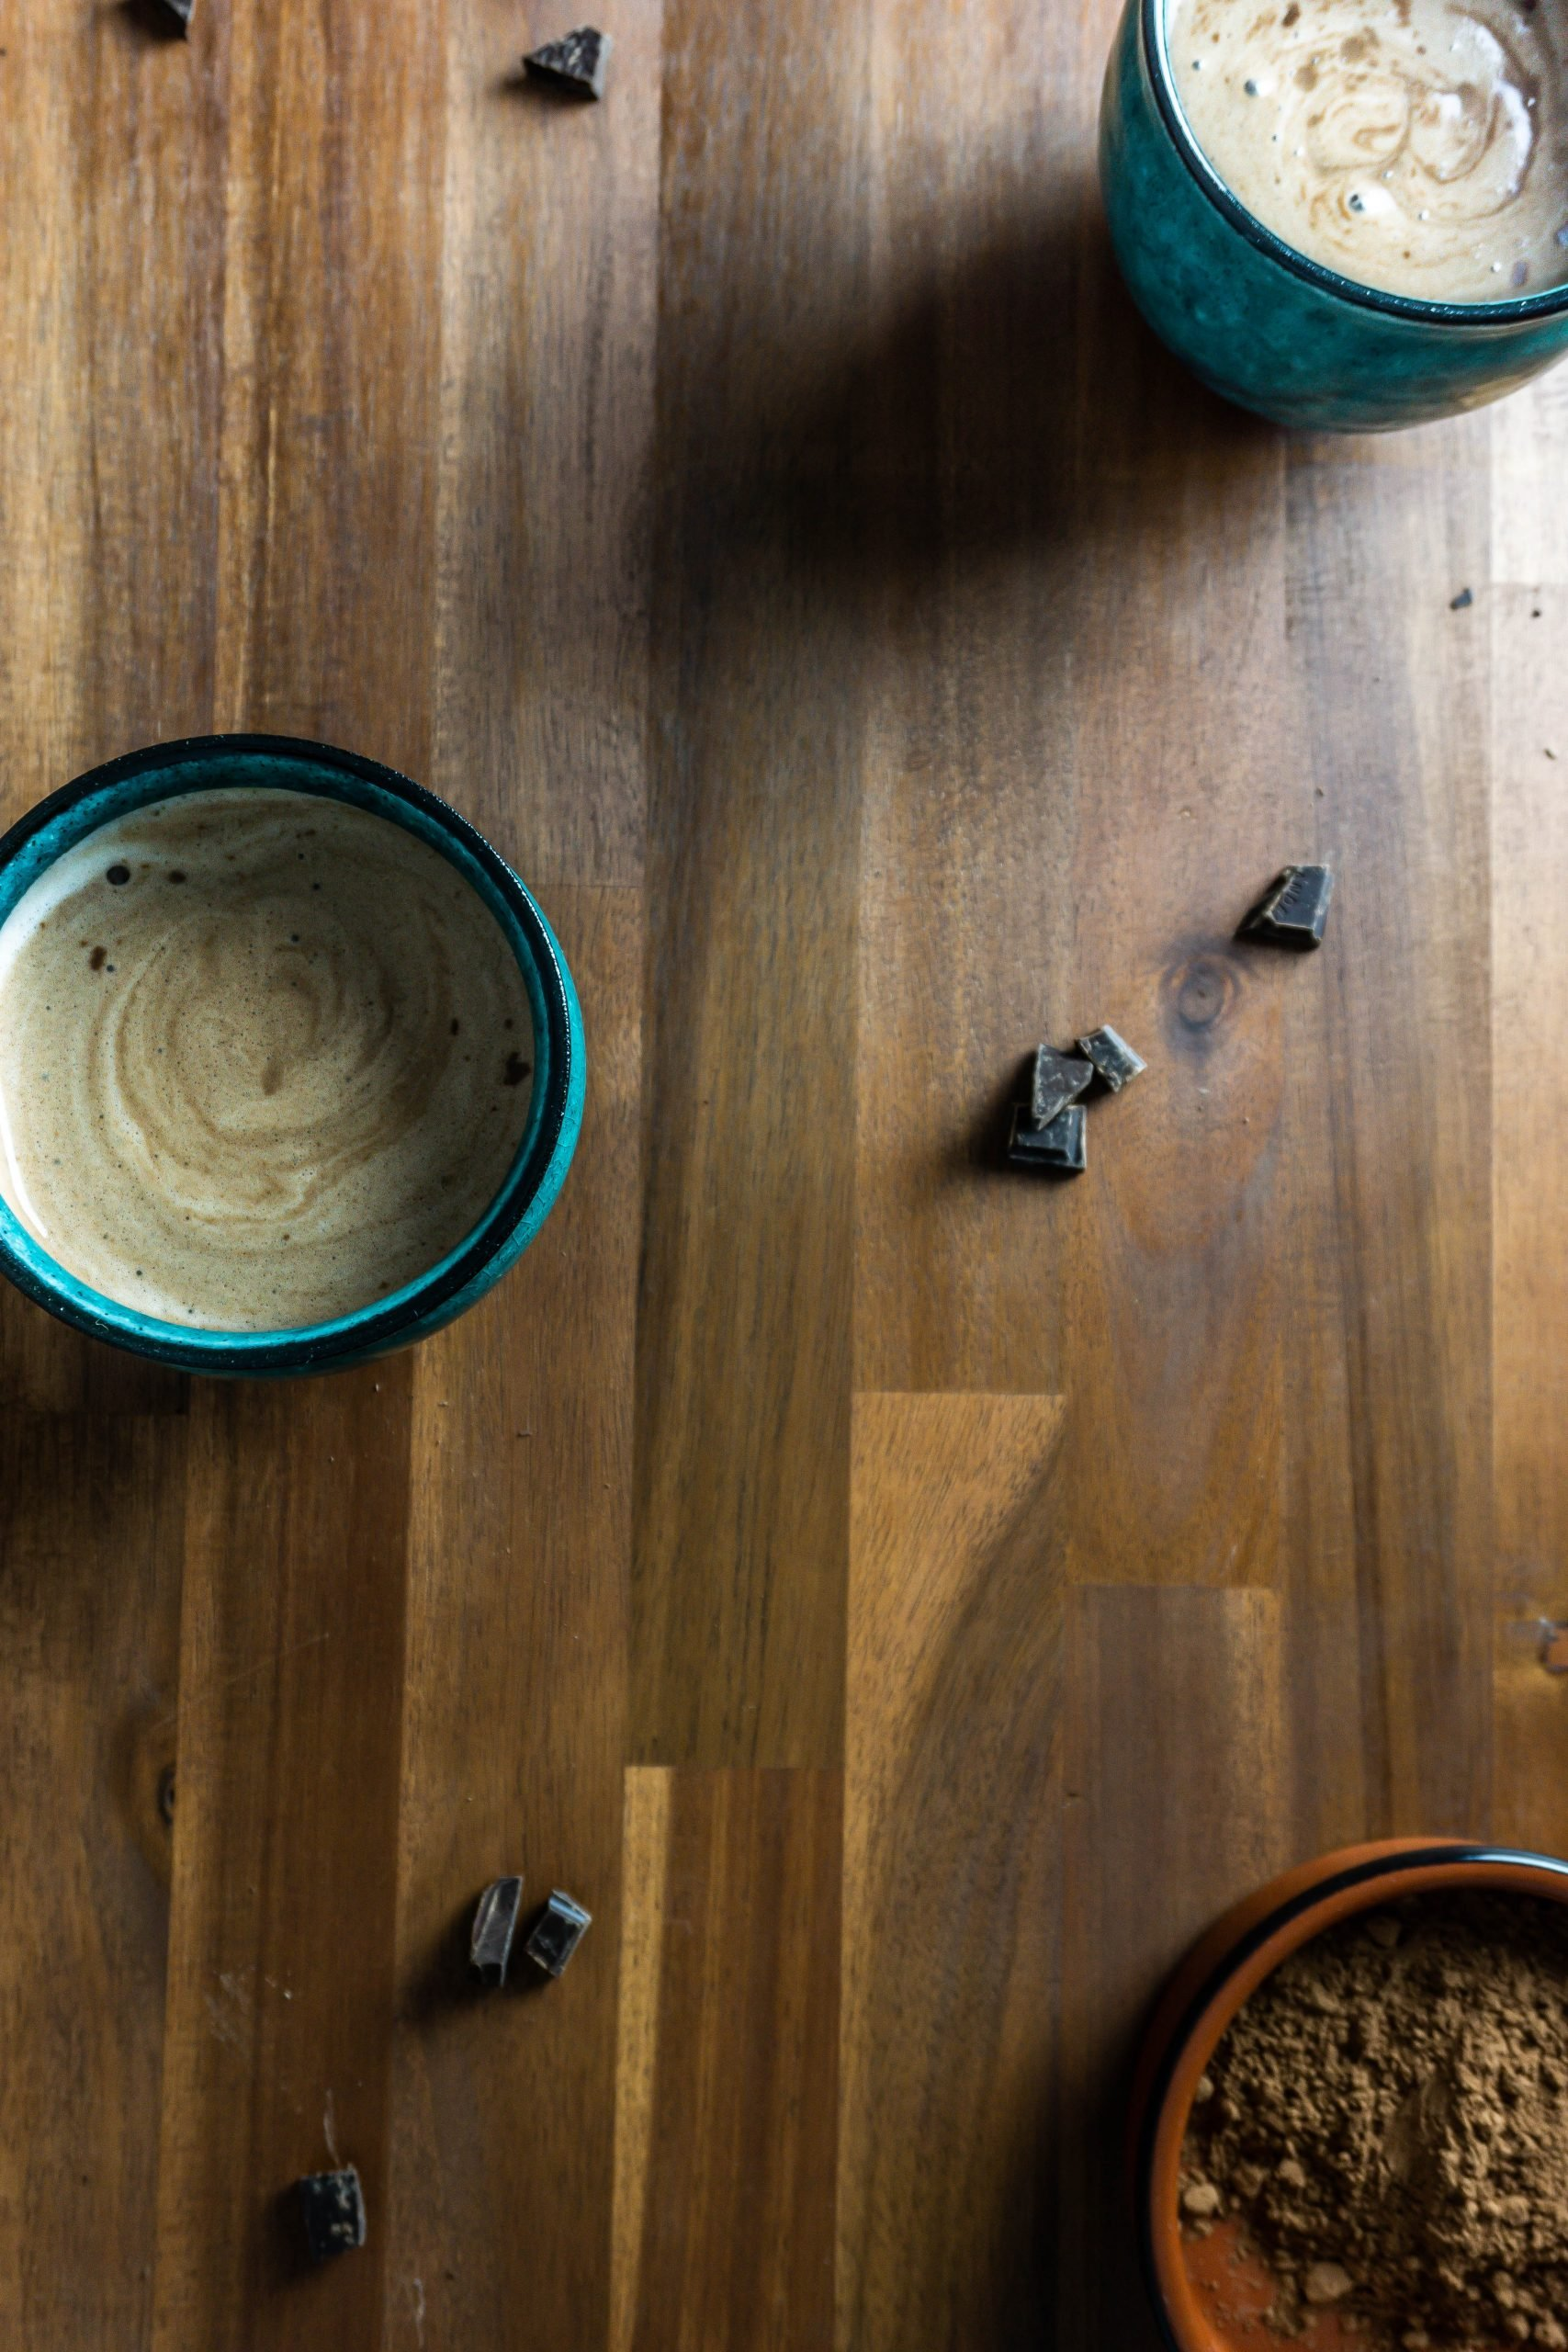 Two Homemade Hot Chocolates on a wooden surface with scattered chocolate and cocoa powder in the background